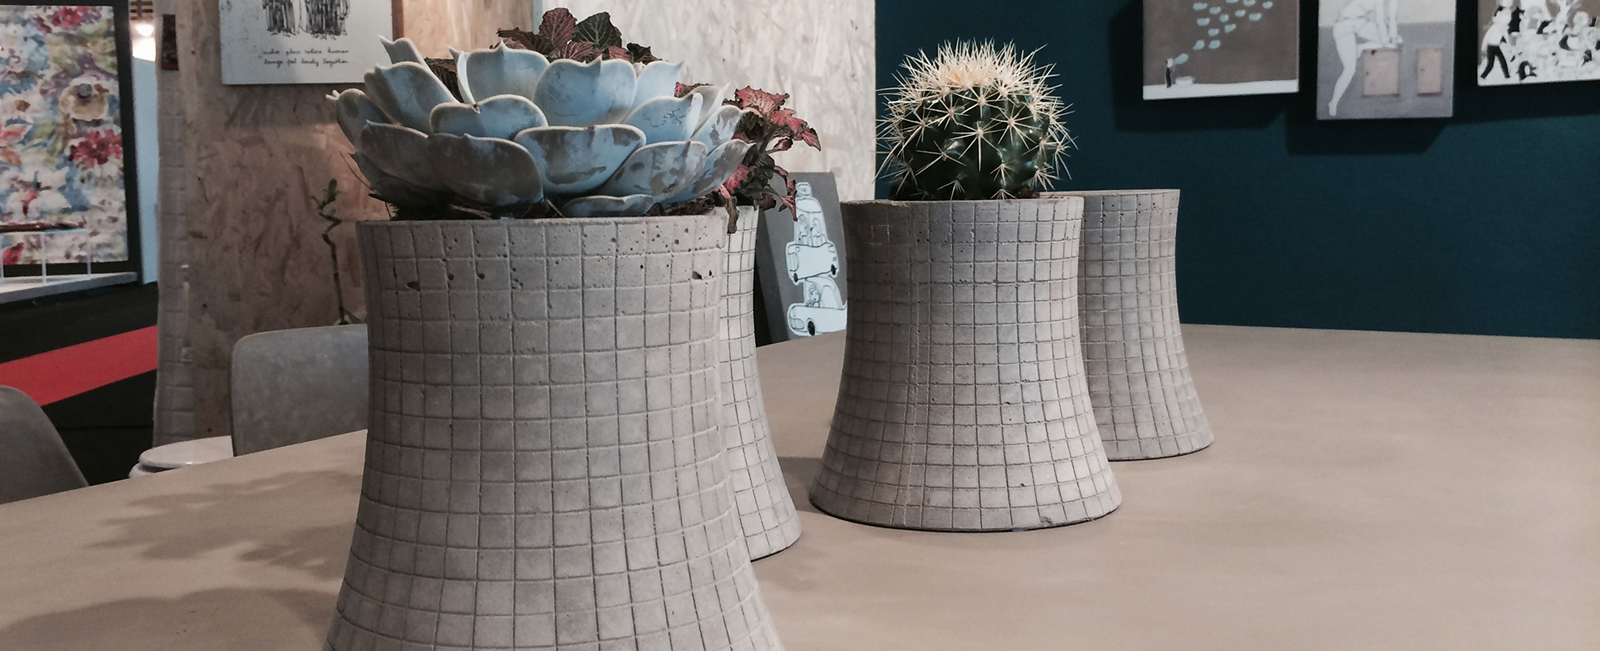 Concrete homeware